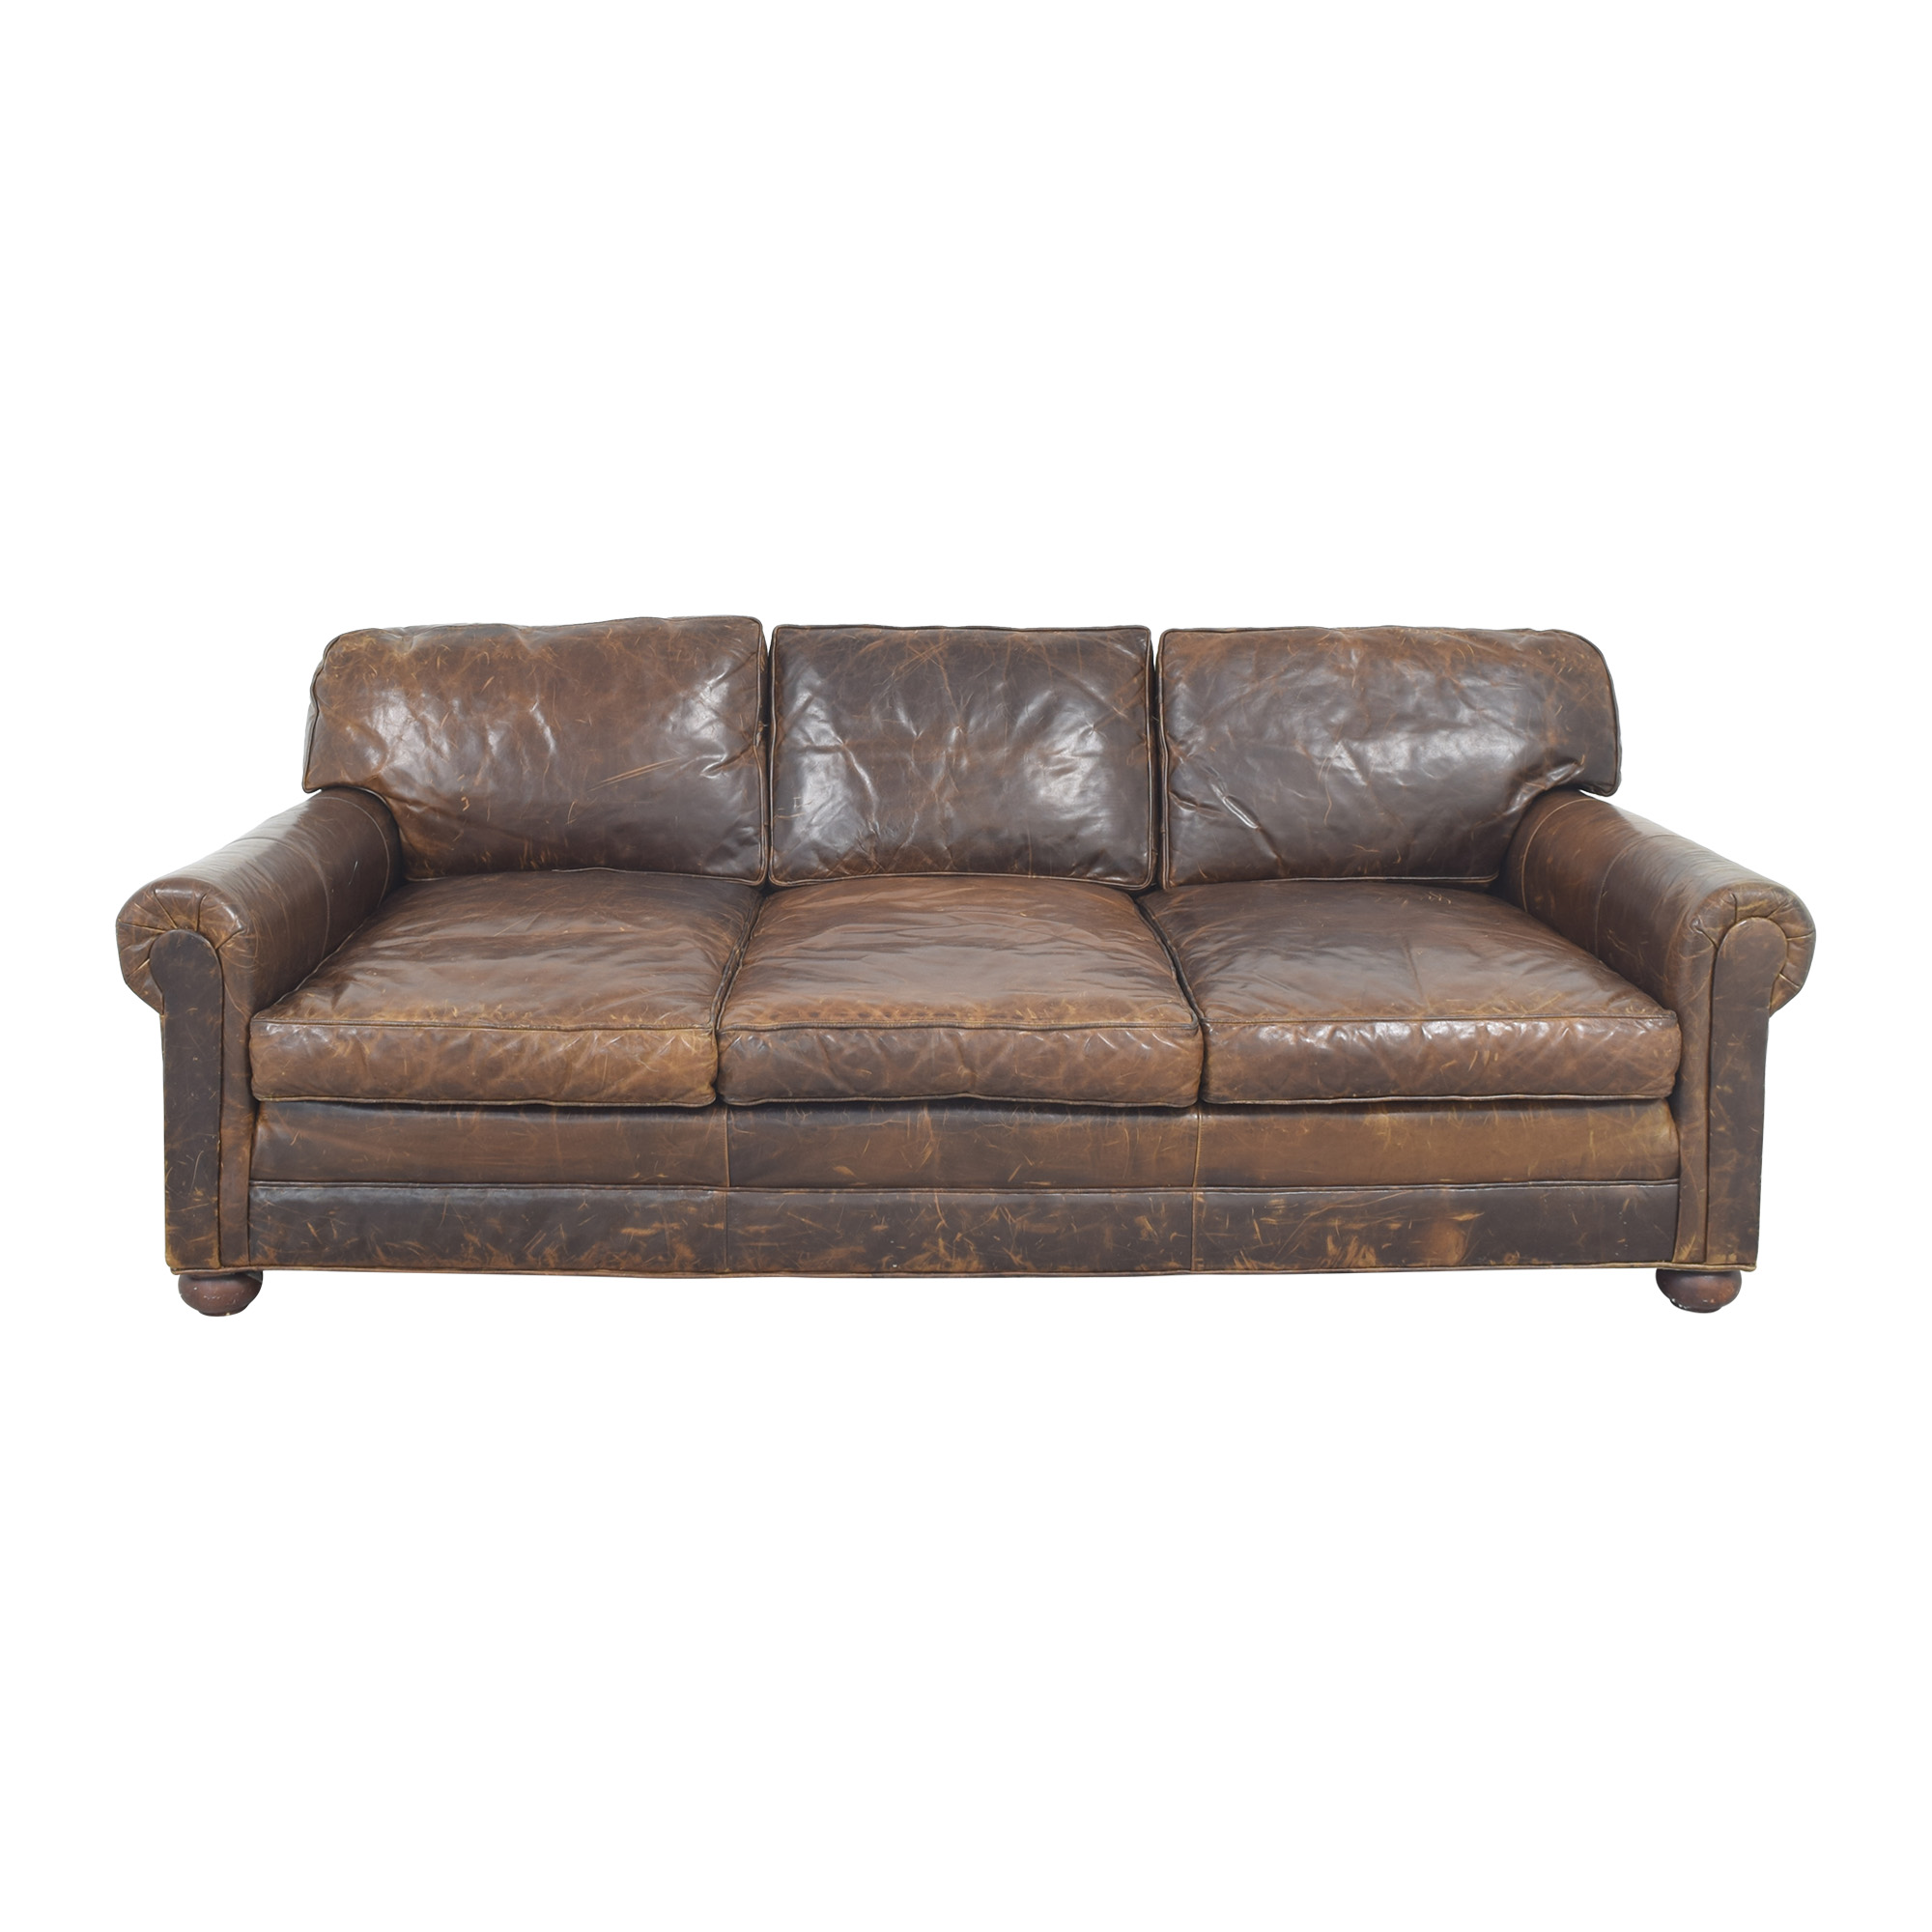 Restoration Hardware Restoration Hardware Original Lancaster Sofa on sale